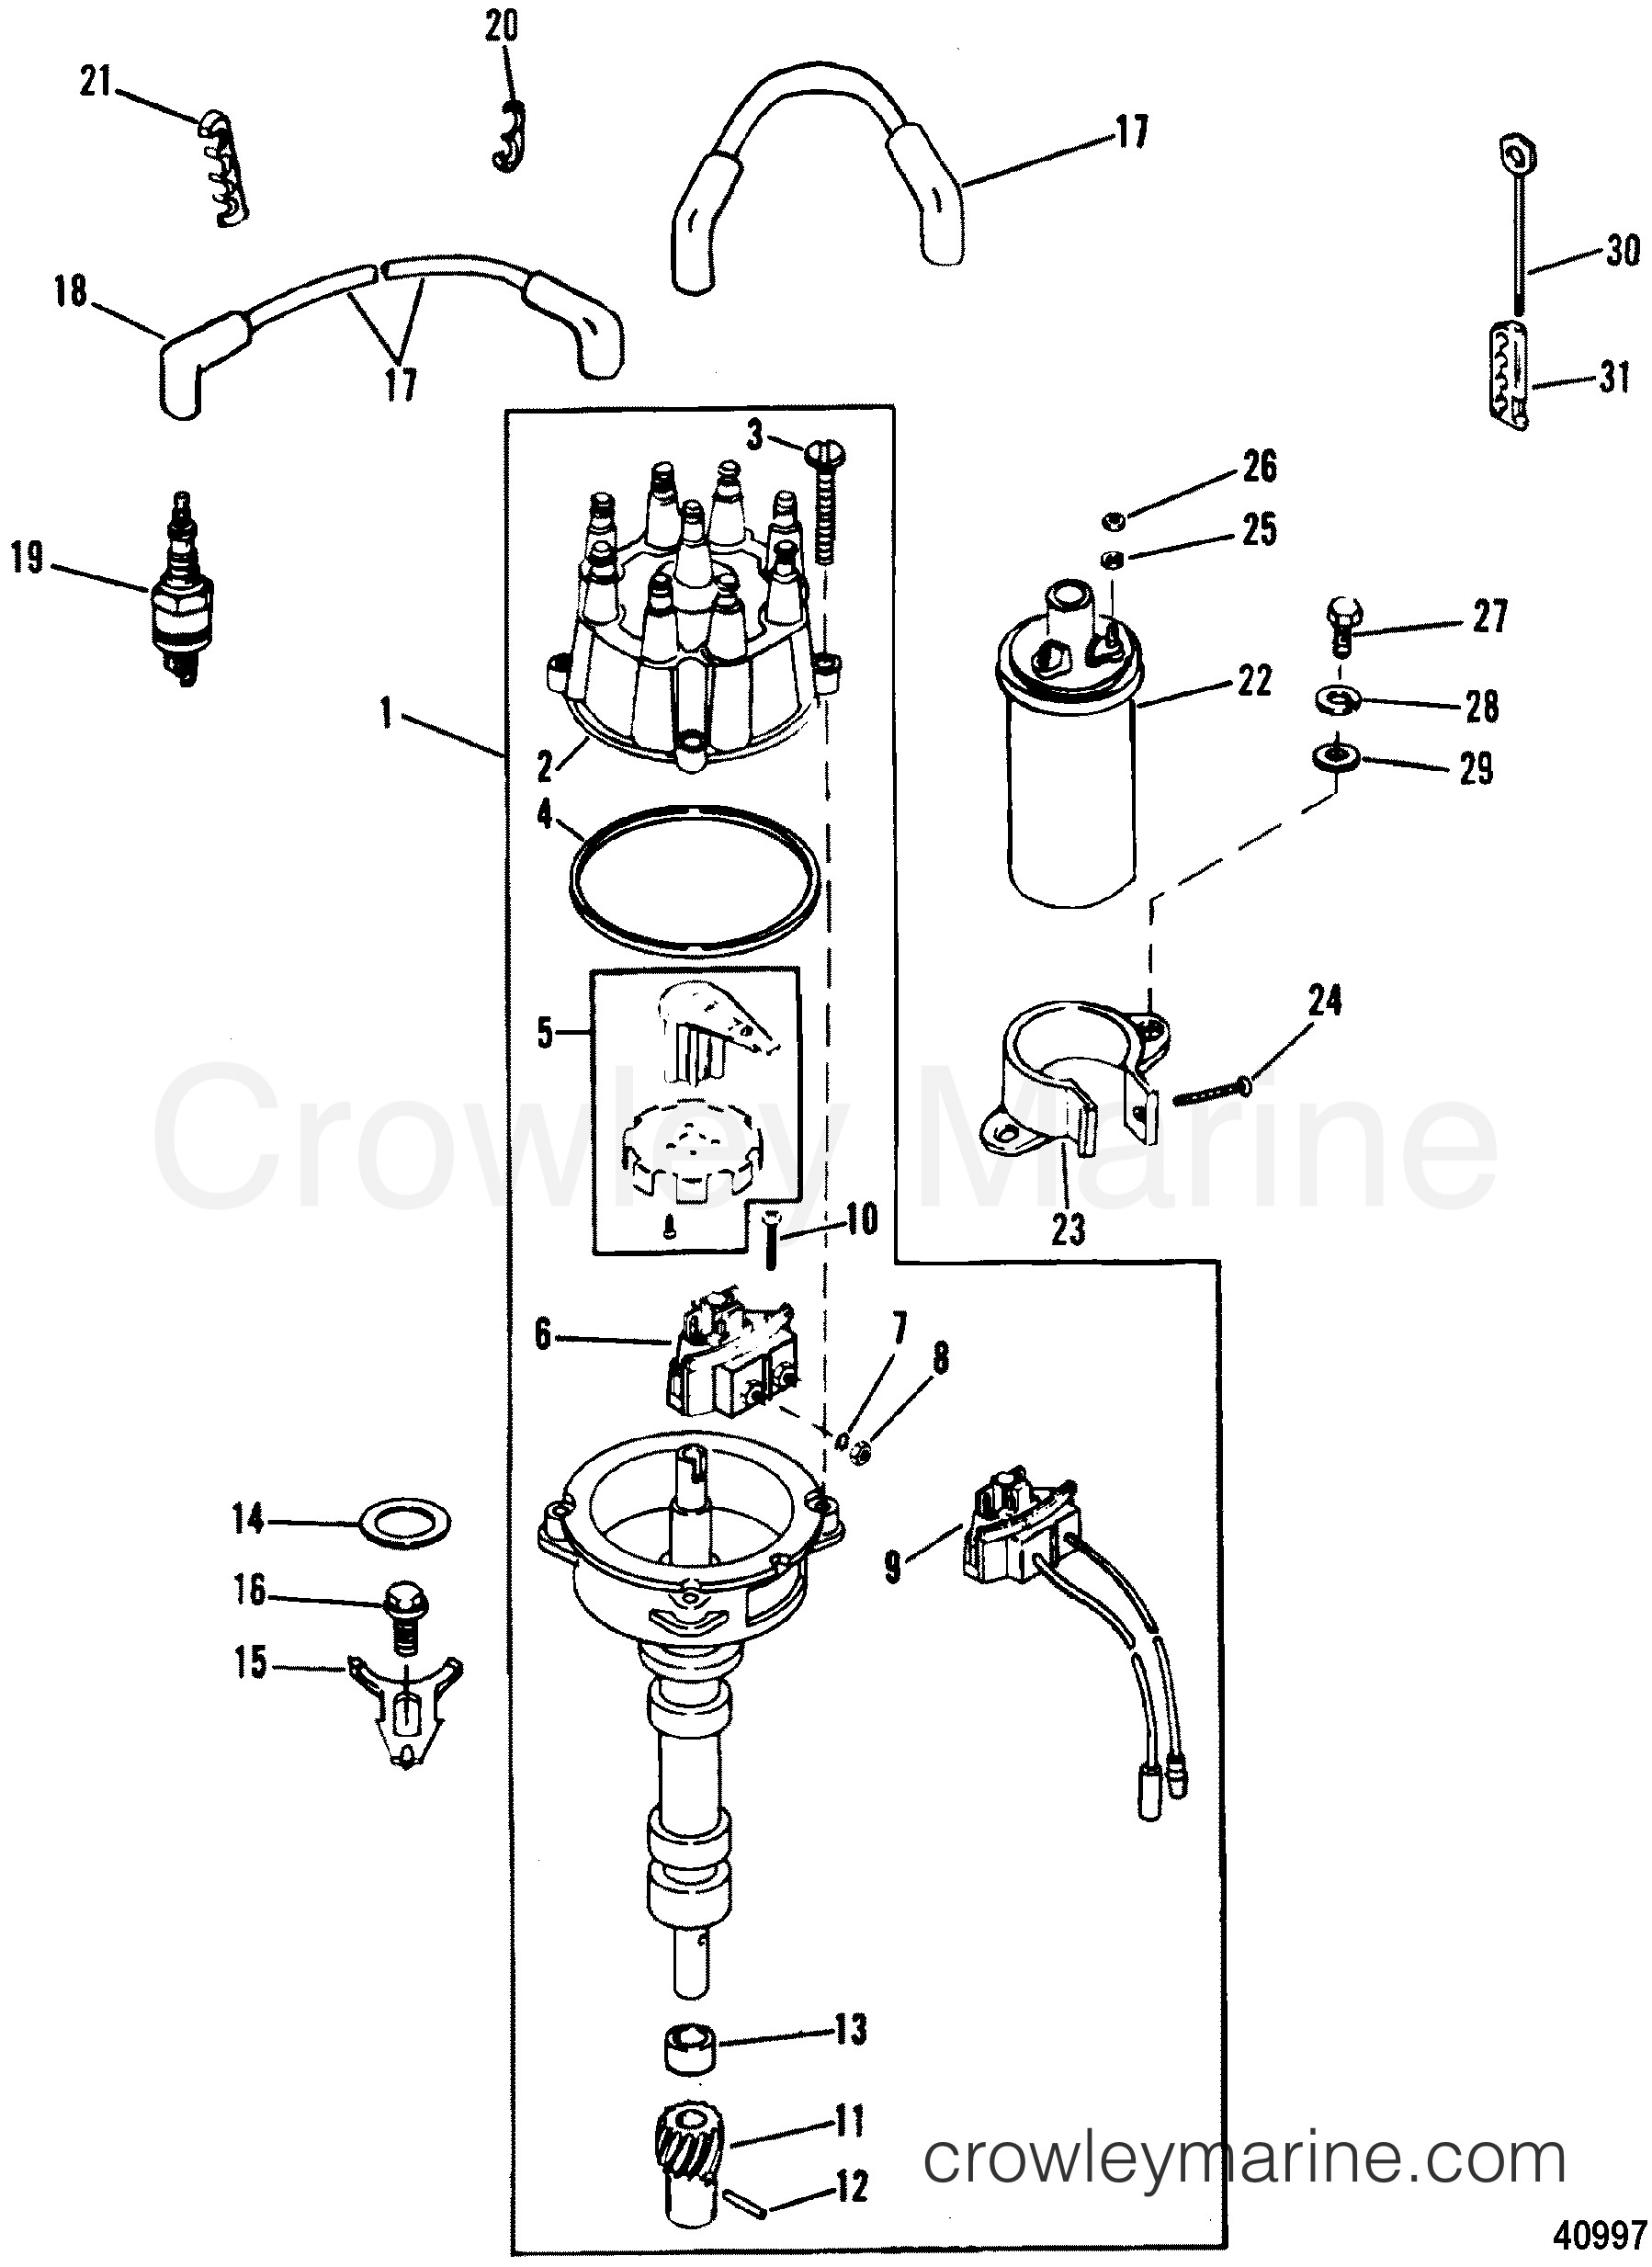 1988 4 3 mercruiser engine wiring diagram  u2022 wiring diagram